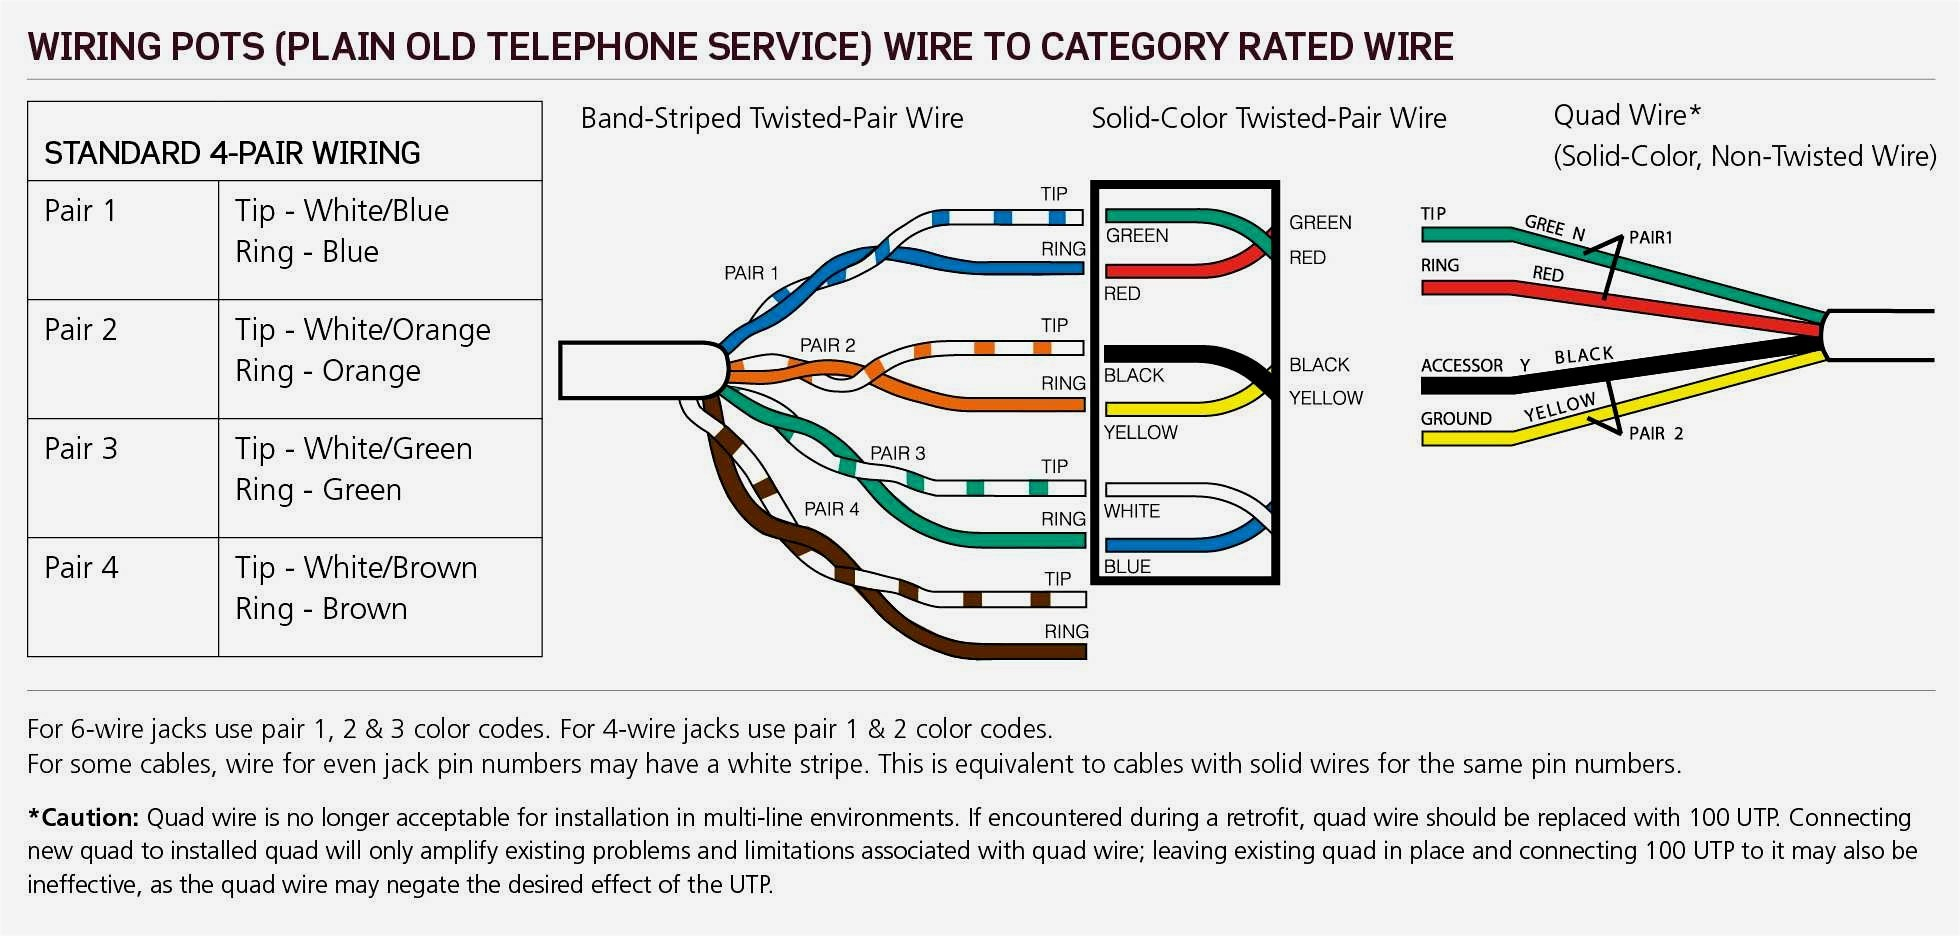 T1 Jack Wiring | Wiring Diagram - Cat5 Phone Line Wiring Diagram